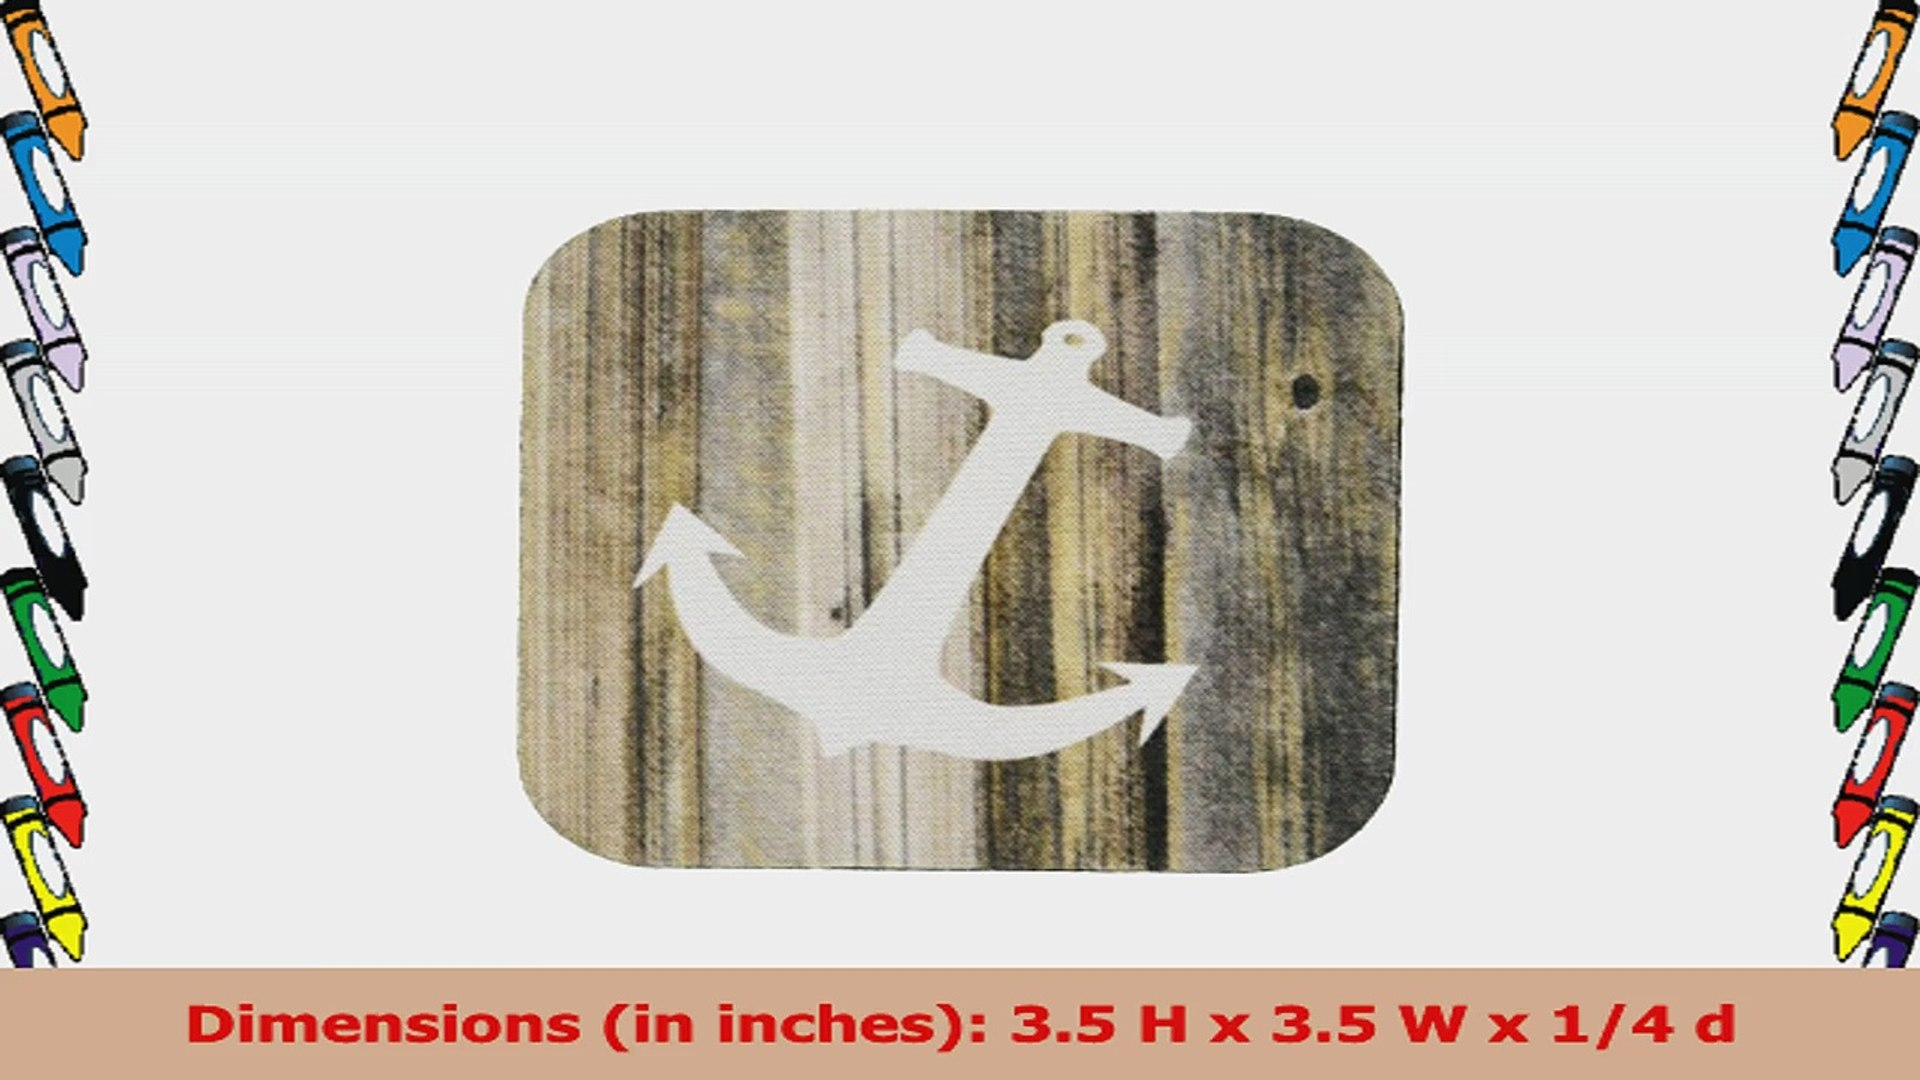 3dRose cst1739022 White Anchor on Planks Soft Coasters Set of 8 8dae1765